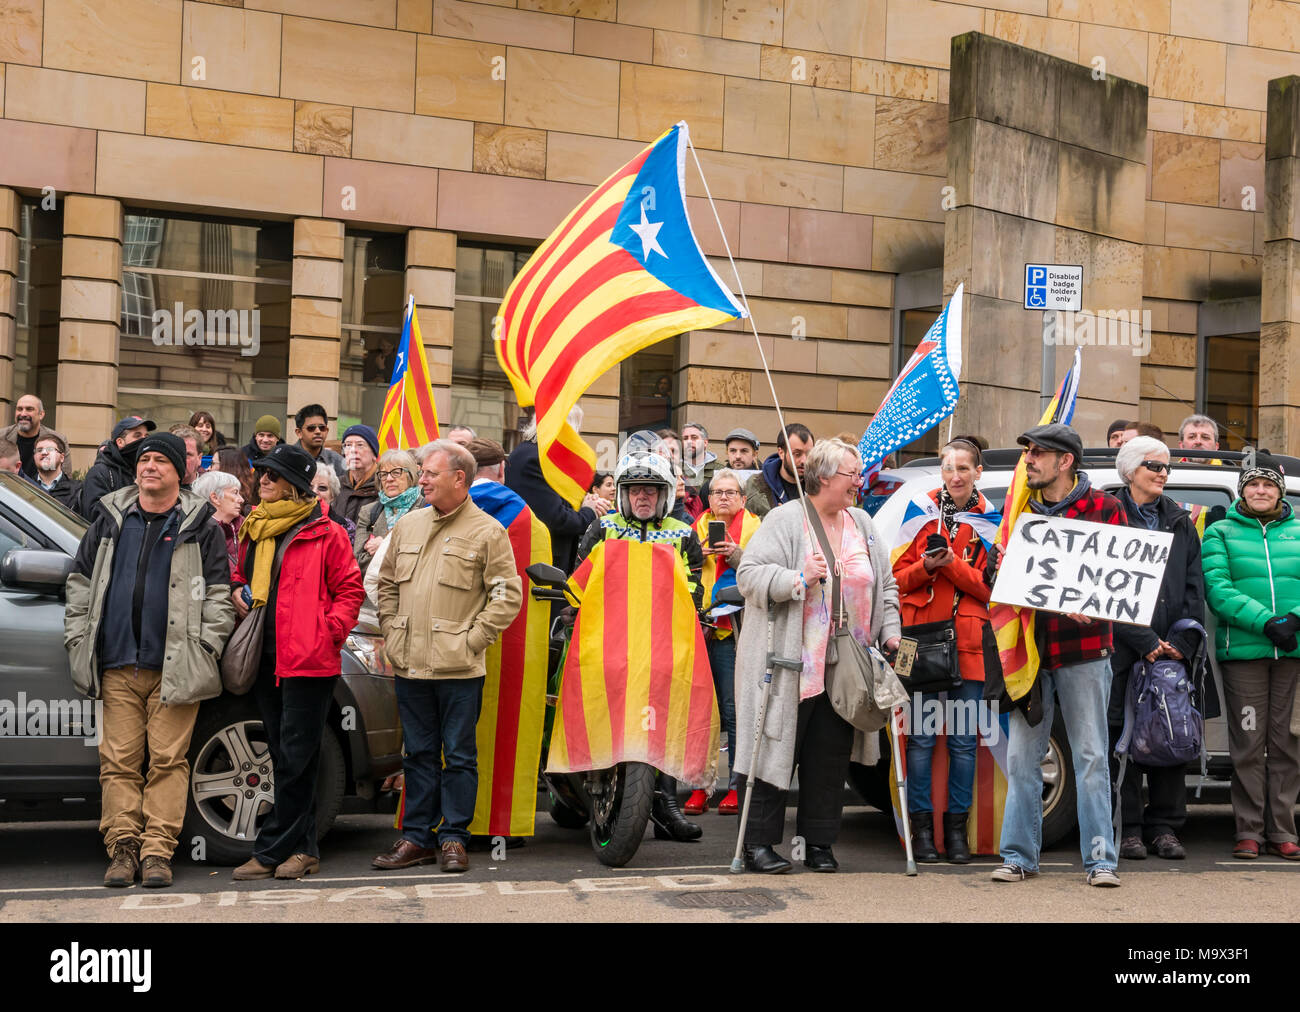 Edinburgh, Scotland, United Kingdom, 28th March 2018. Demonstrators and supporters of Professor Clara Ponsati waving Catalan flags outside Edinburgh Sheriff Court, Chambers Street, as Clara Ponsati, former Catalan Education Minister, appears in an initial extradition court hearing. Demonstrators included Scottish independence supporters. A male protestor holds a placard reading 'Catalona is not Spain'. A motorcyclist with a Catalonian flag draped over the motorcycle - Stock Image